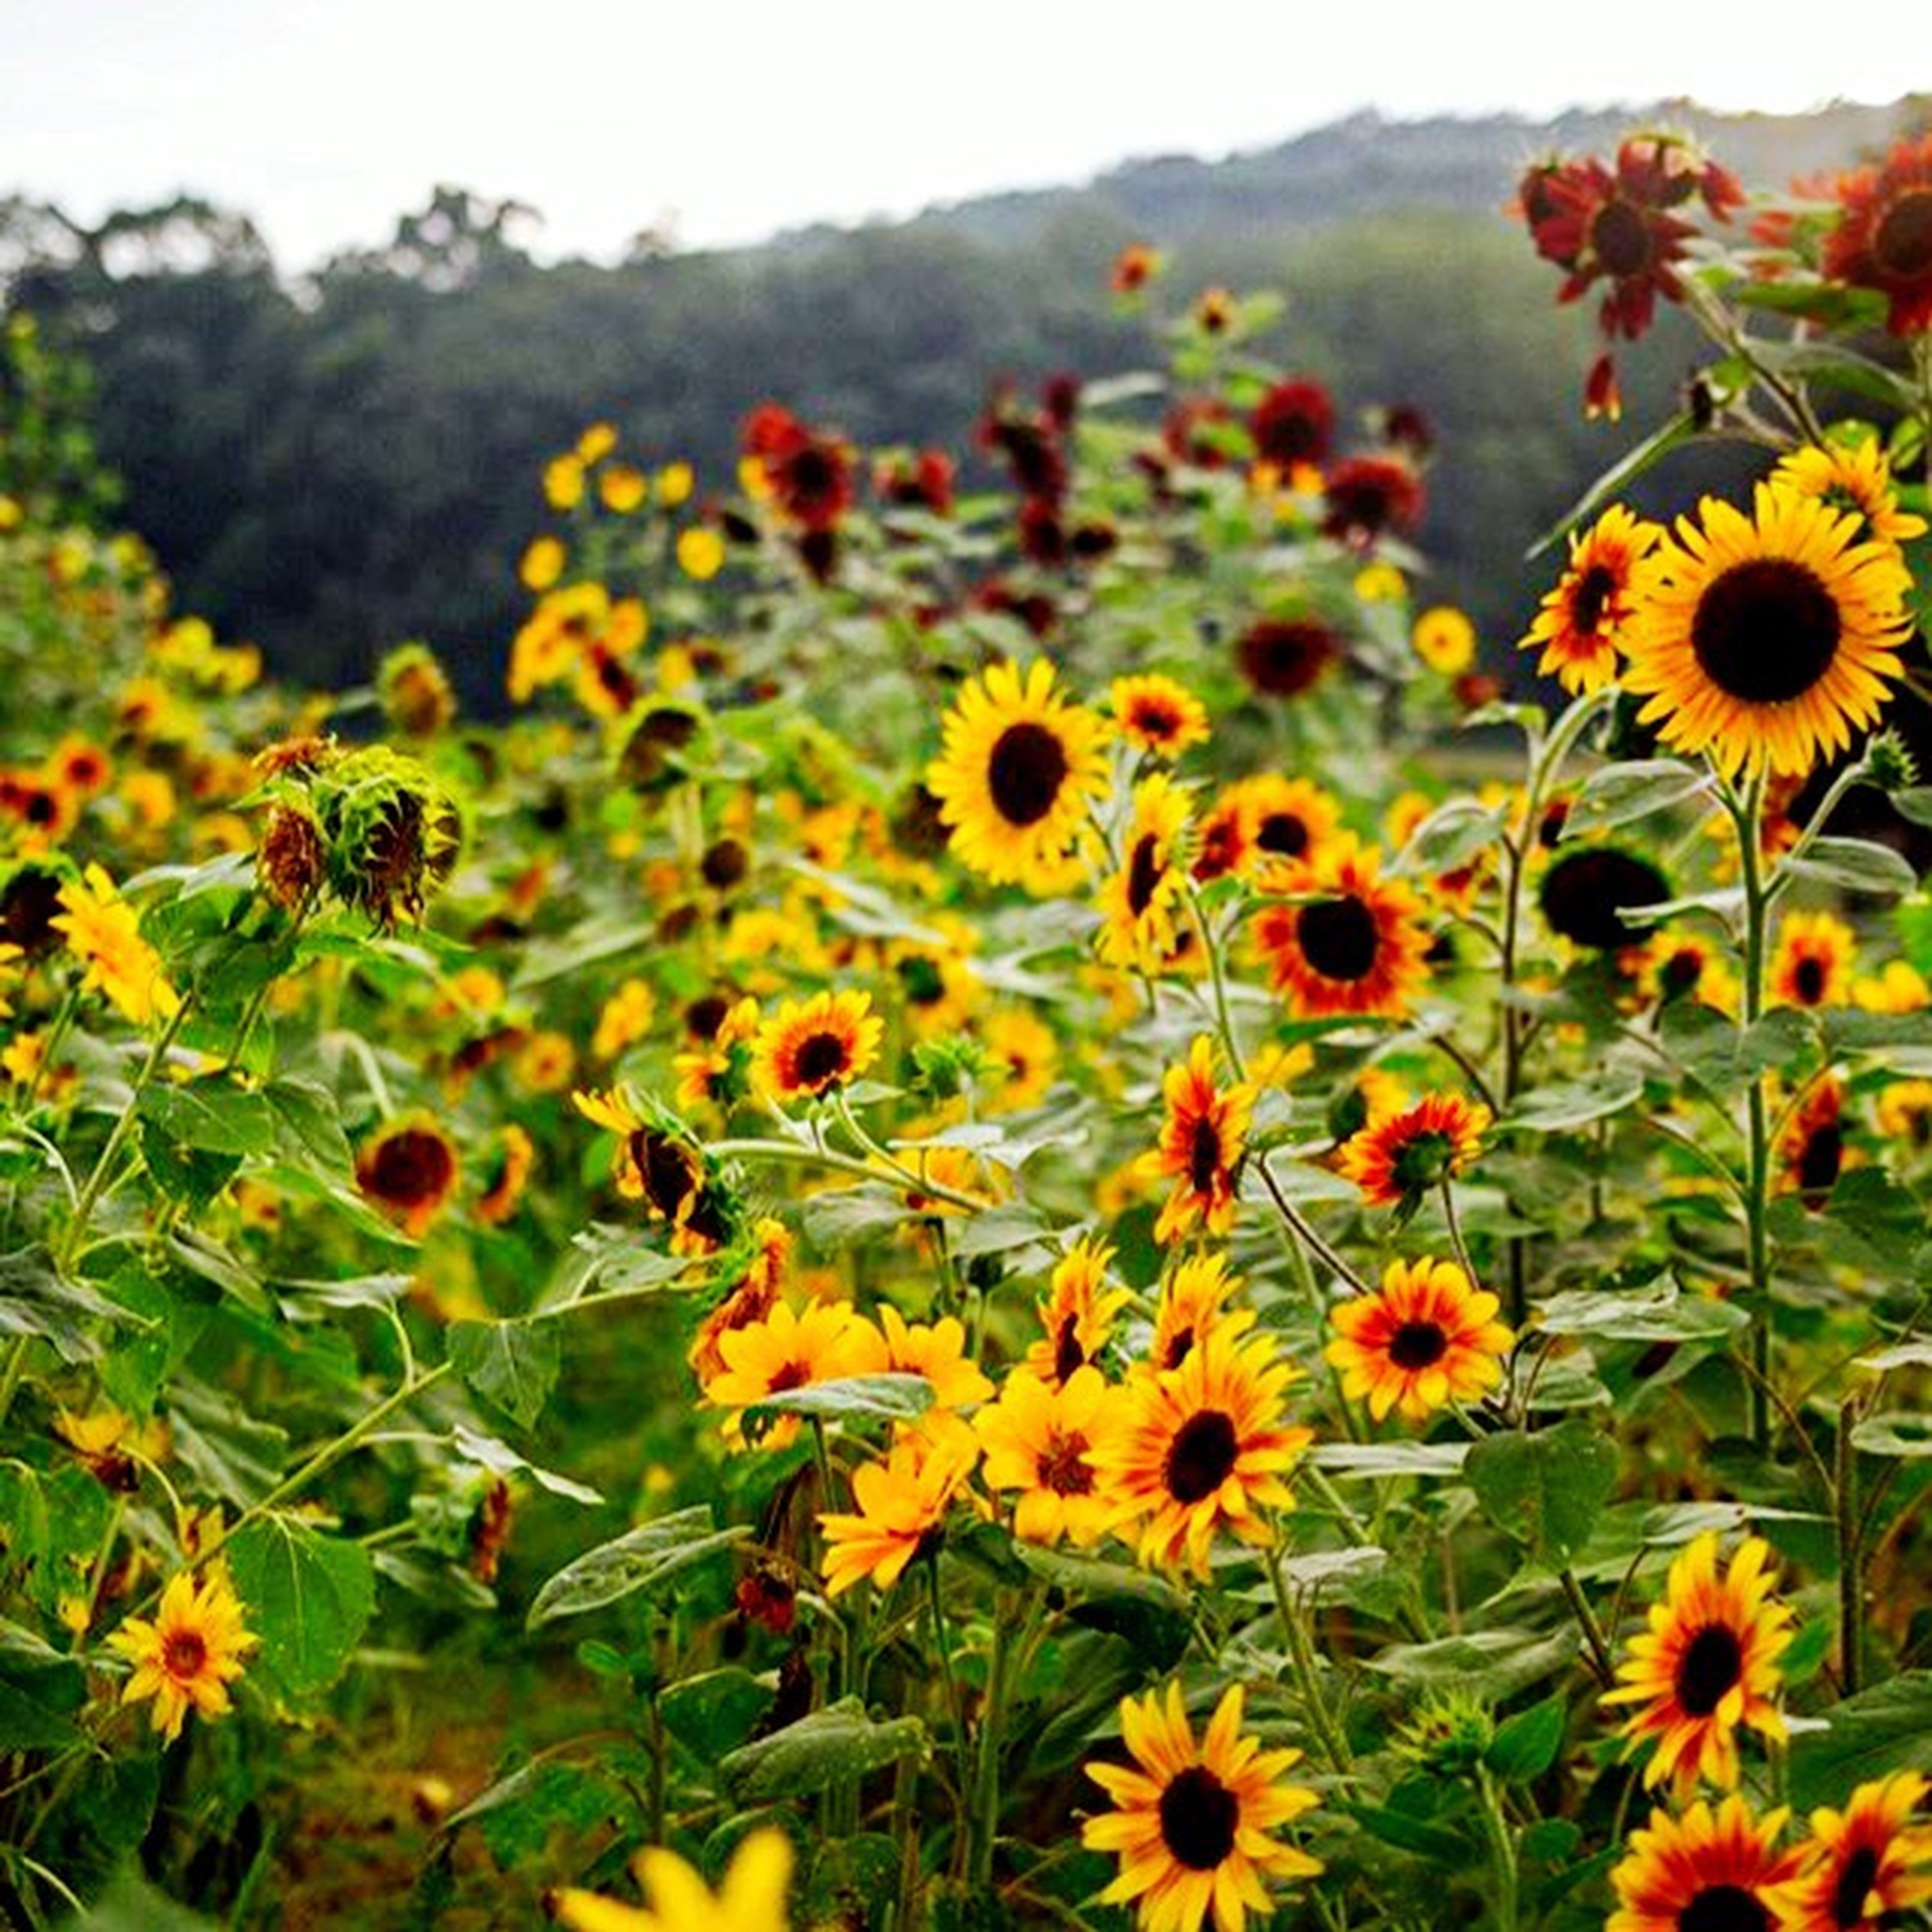 flower, freshness, yellow, growth, fragility, beauty in nature, petal, blooming, plant, nature, field, flower head, sunflower, focus on foreground, in bloom, close-up, abundance, agriculture, stem, outdoors